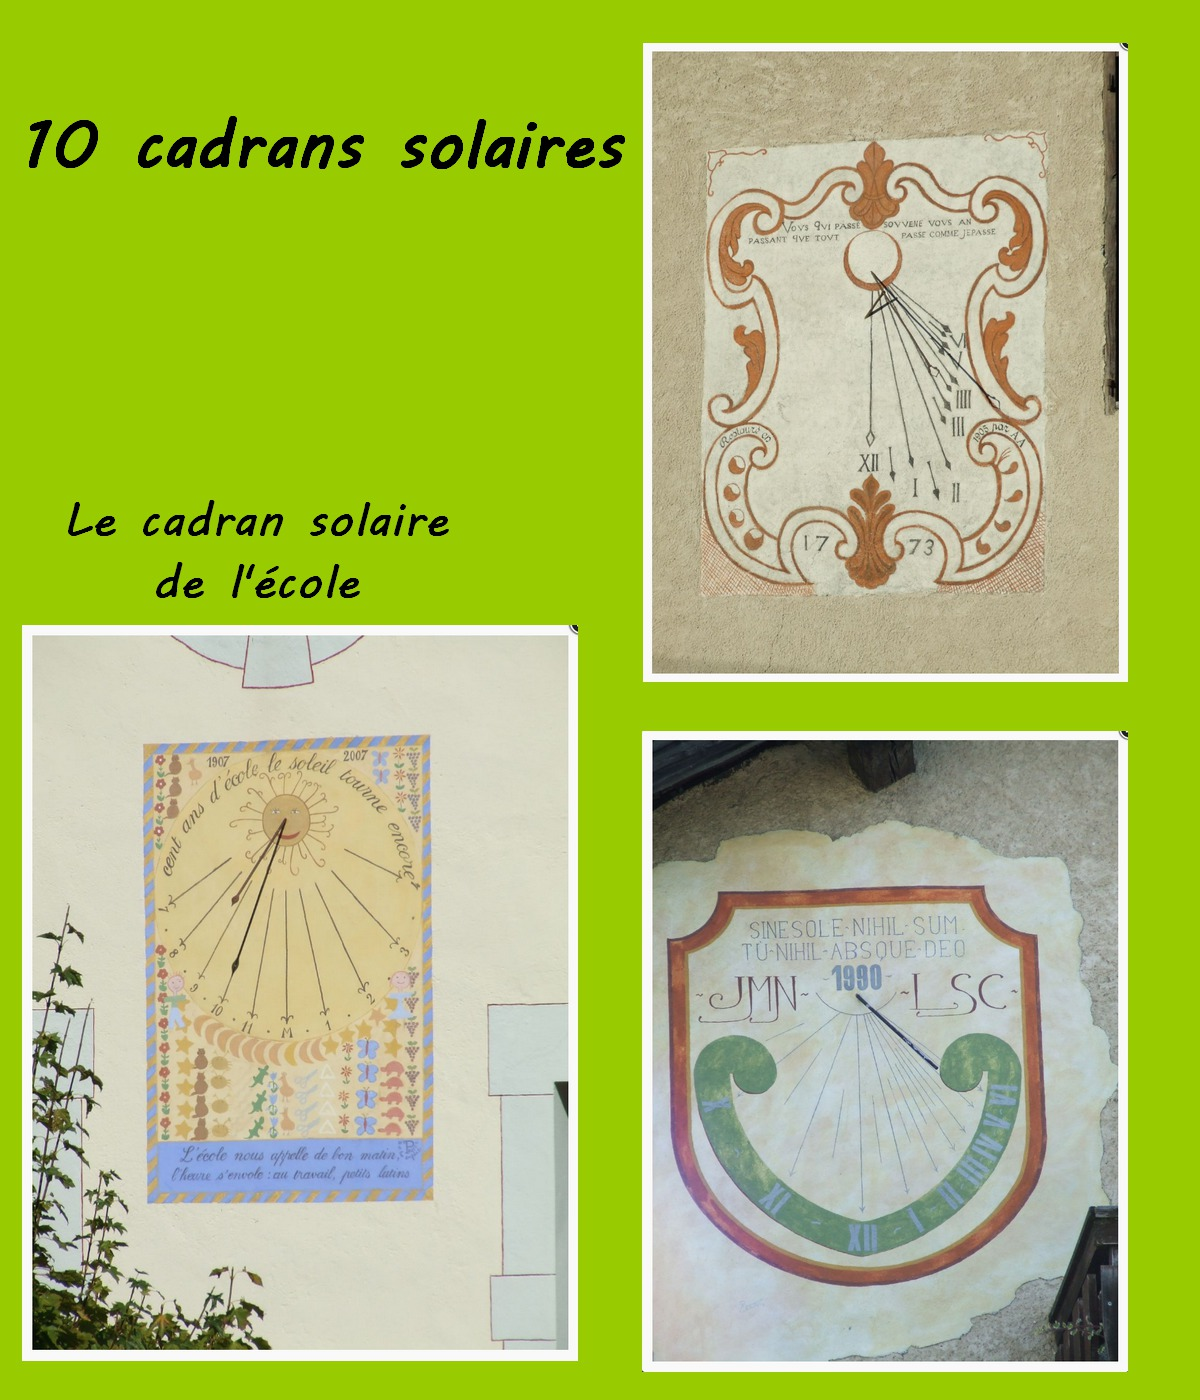 10-cadrans-solaires-ConvertImage.jpg